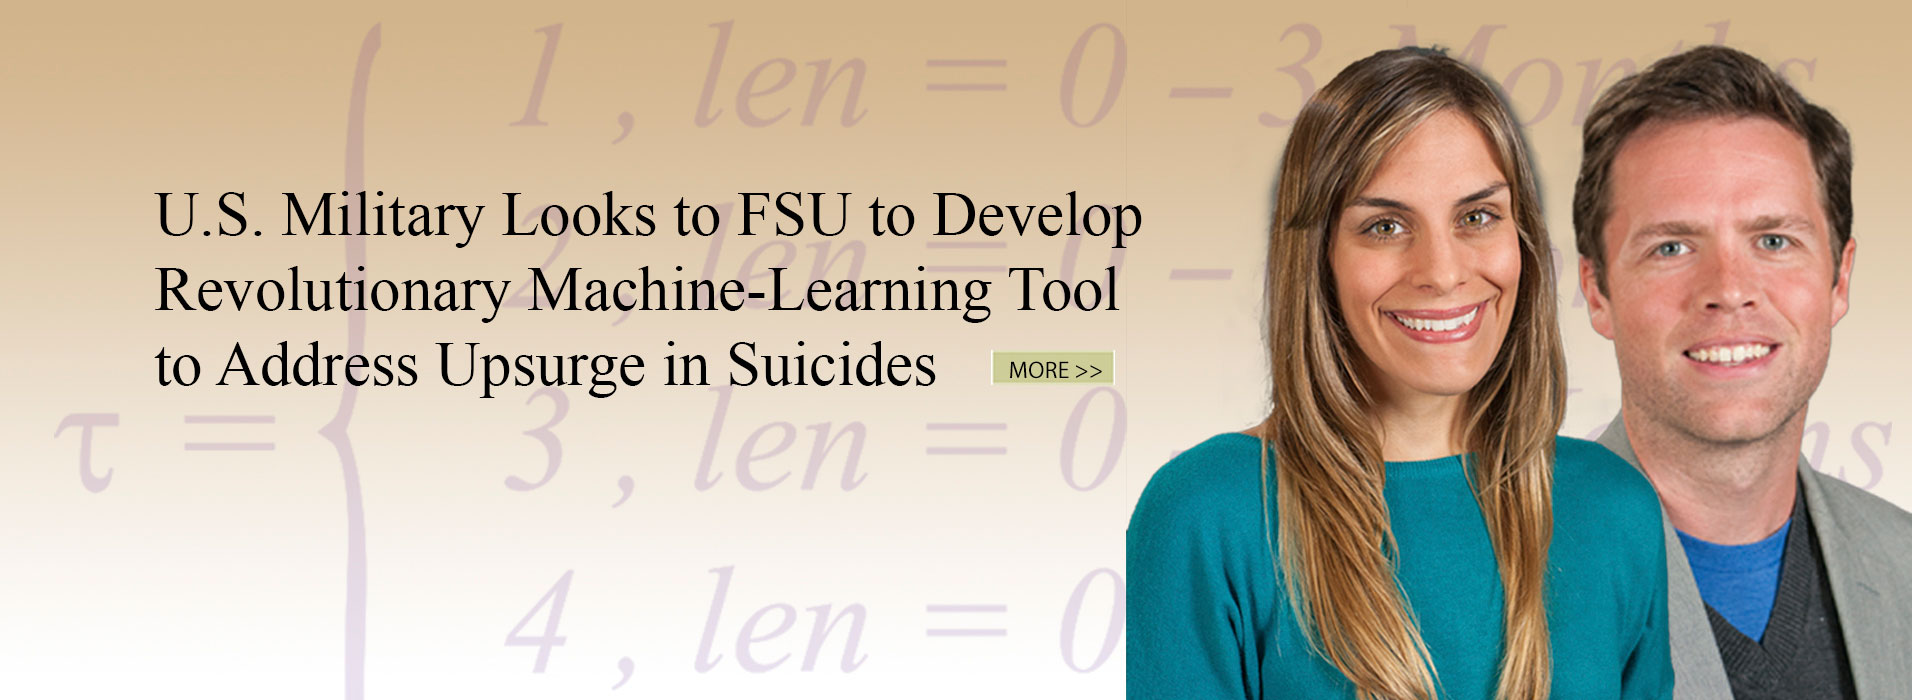 U.S. Military Looks to FSU to Develop Revolutionary<br>Machine-Learning Tool to Address Upsurge in Suicides